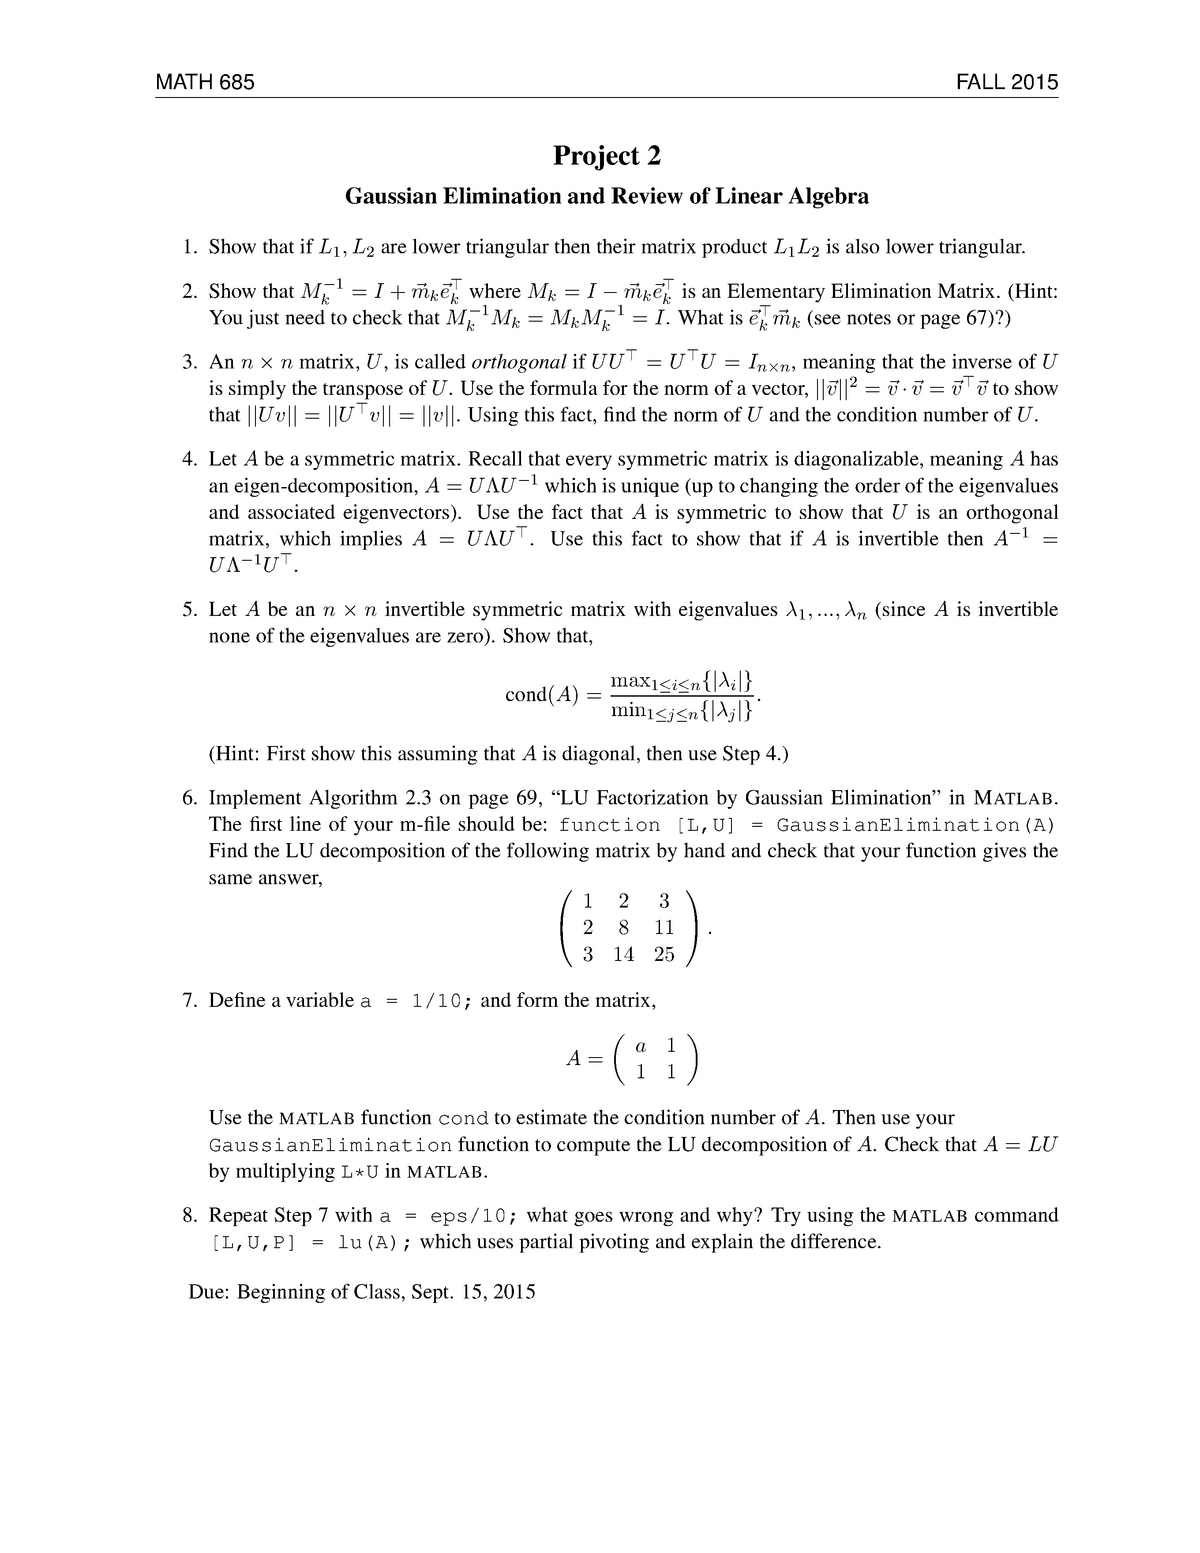 Project 2: Gaussian Elimination and review of Linear Algebra